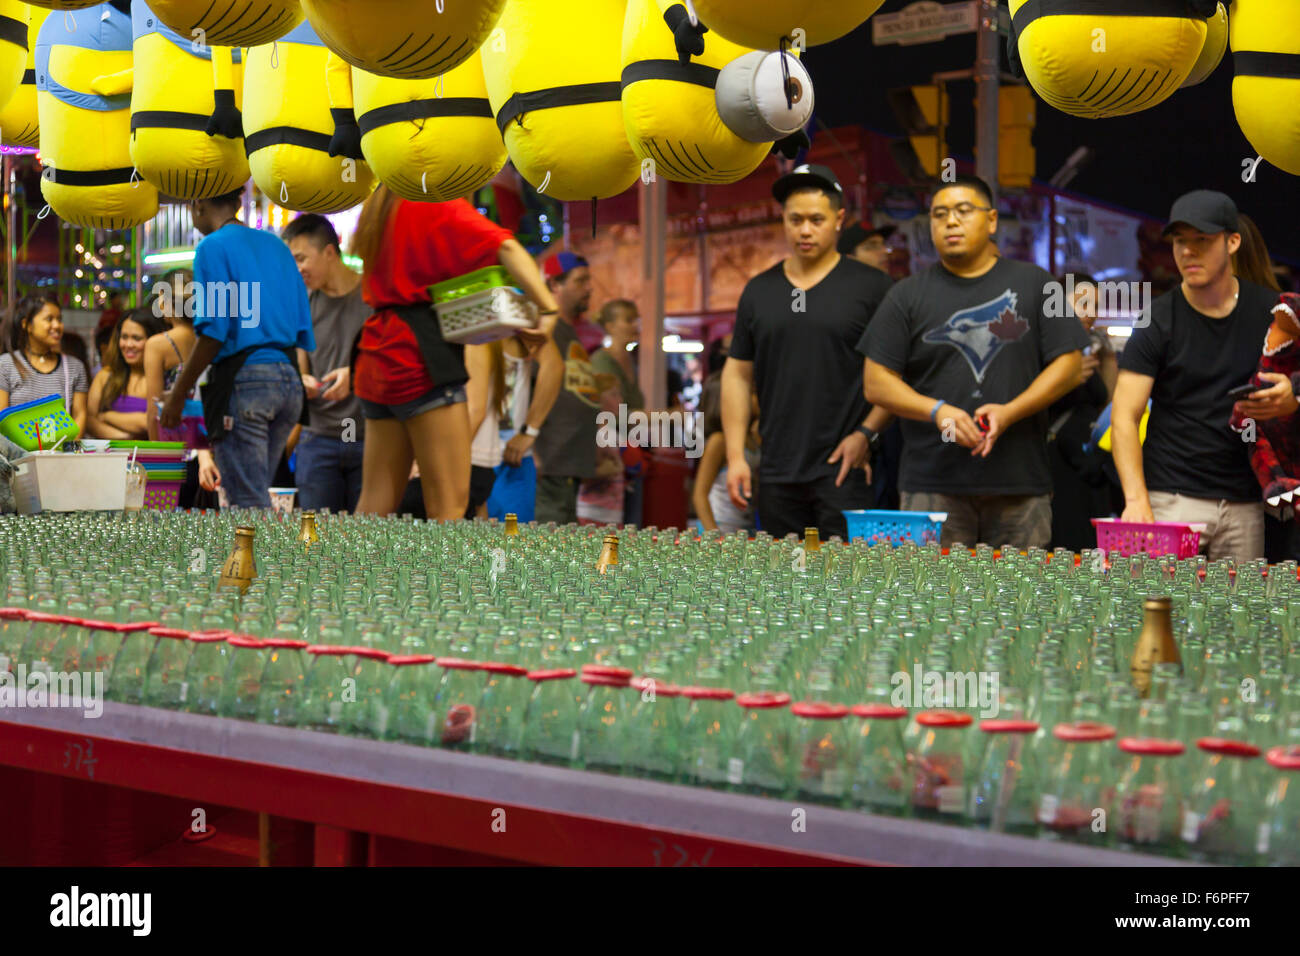 The Ring Toss game. Canadian National Exhibition (CNE), Toronto, Ontario, Canada. - Stock Image